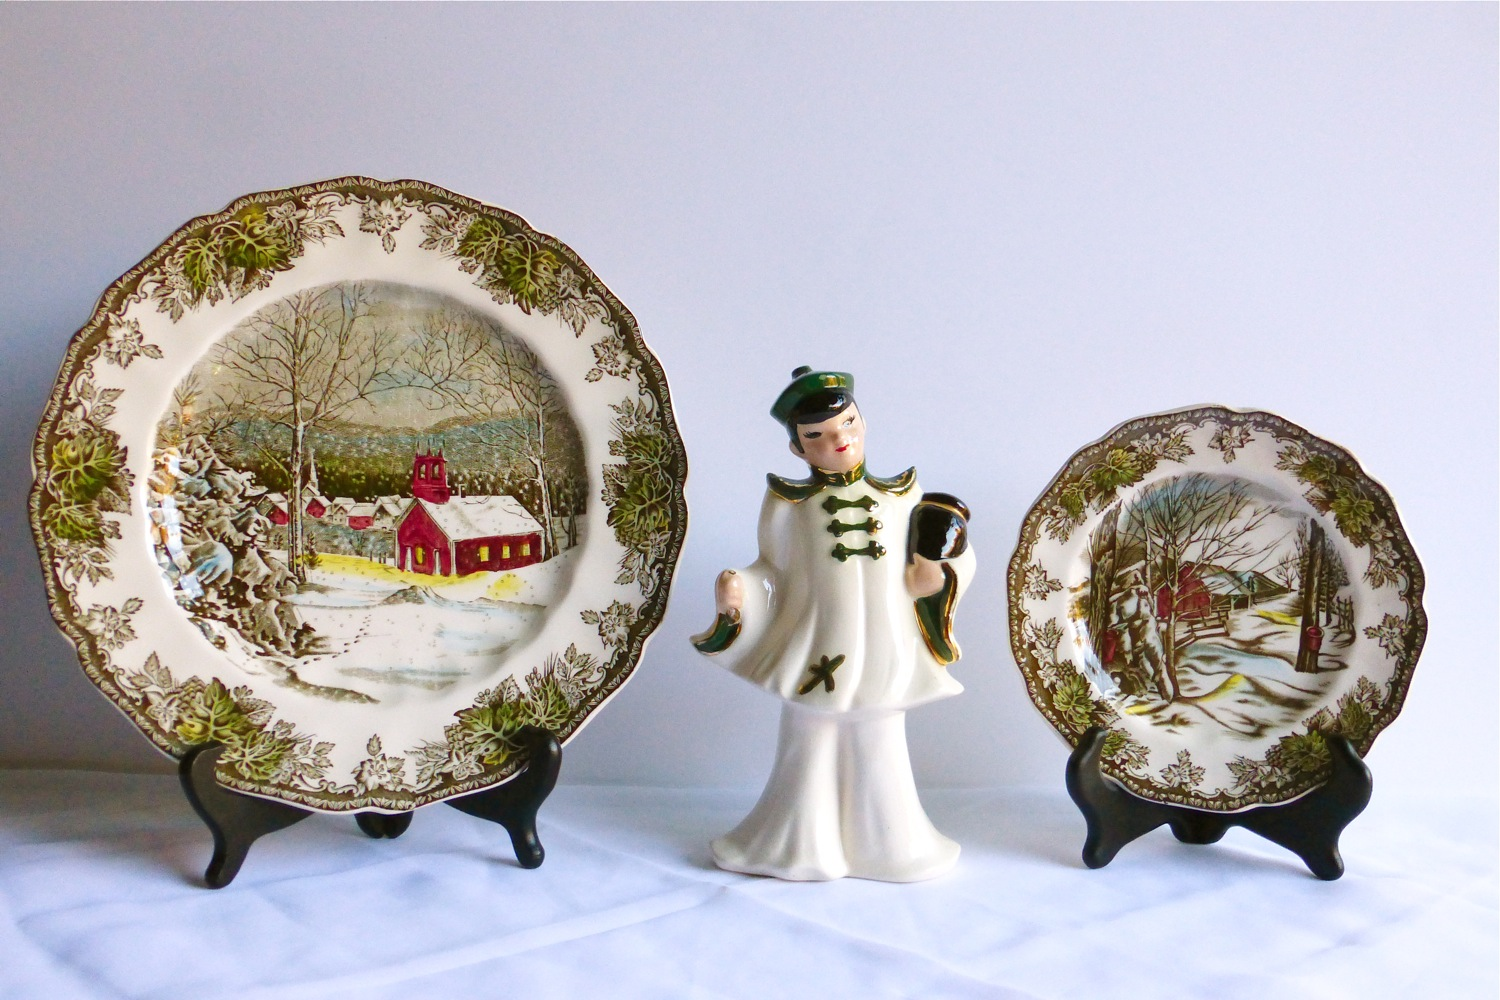 Vintage Finds, Johnson Brothers, Johnson Brothers plates, transfer ware, Johnson Brothers transfer ware, Johnson Bros The Friendly Village, Johnson Bros Sugar Maples, Johnson Brothers decorative china, vintage decorative china, vintage transfer ware, vintage Johnson Brothers china, Johnson Bros The Schoolhouse, vintage English transfer ware, vintage English Johnson Bros, vintage English Johnson Brothers transfer ware, vintage winter scenery china, vintage decorative transfer ware china, chinoiserie figurine, chinoiserie boy figurine, chinoiserie style, chinoiserie kitsch, oriental boy figurine, asian boy figurine